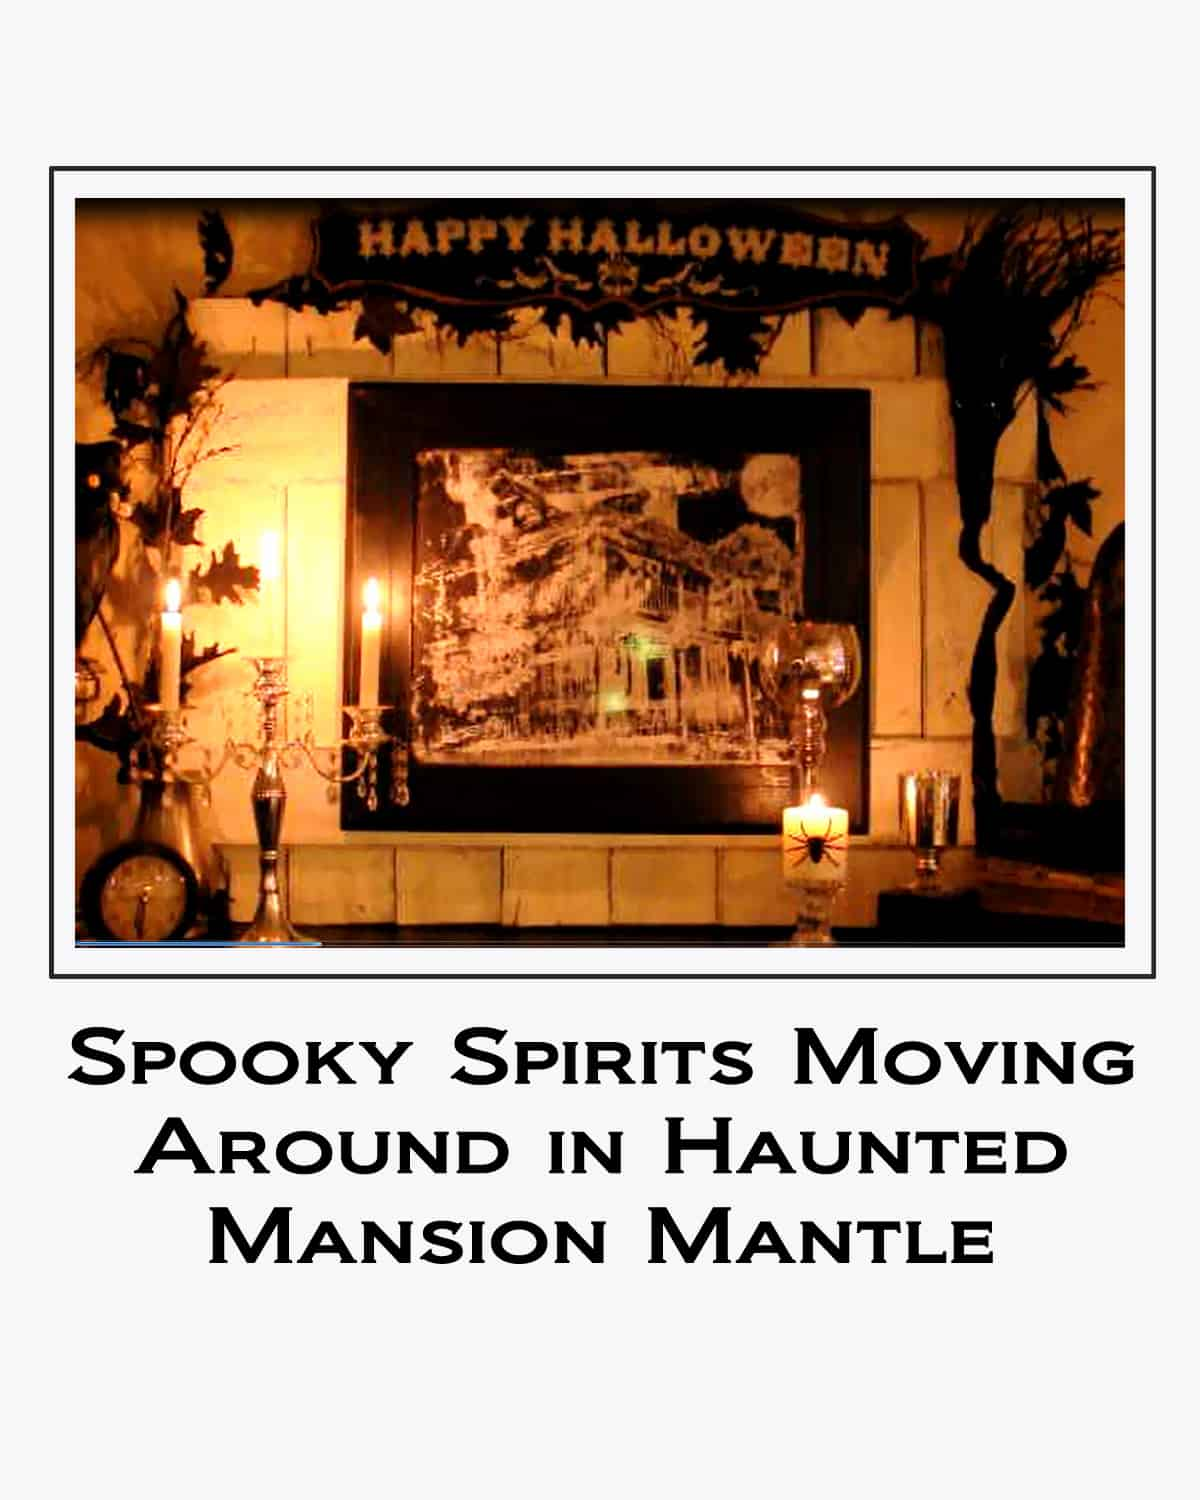 Spooky Spirits Moving Around in Haunted Mansion Mantle button